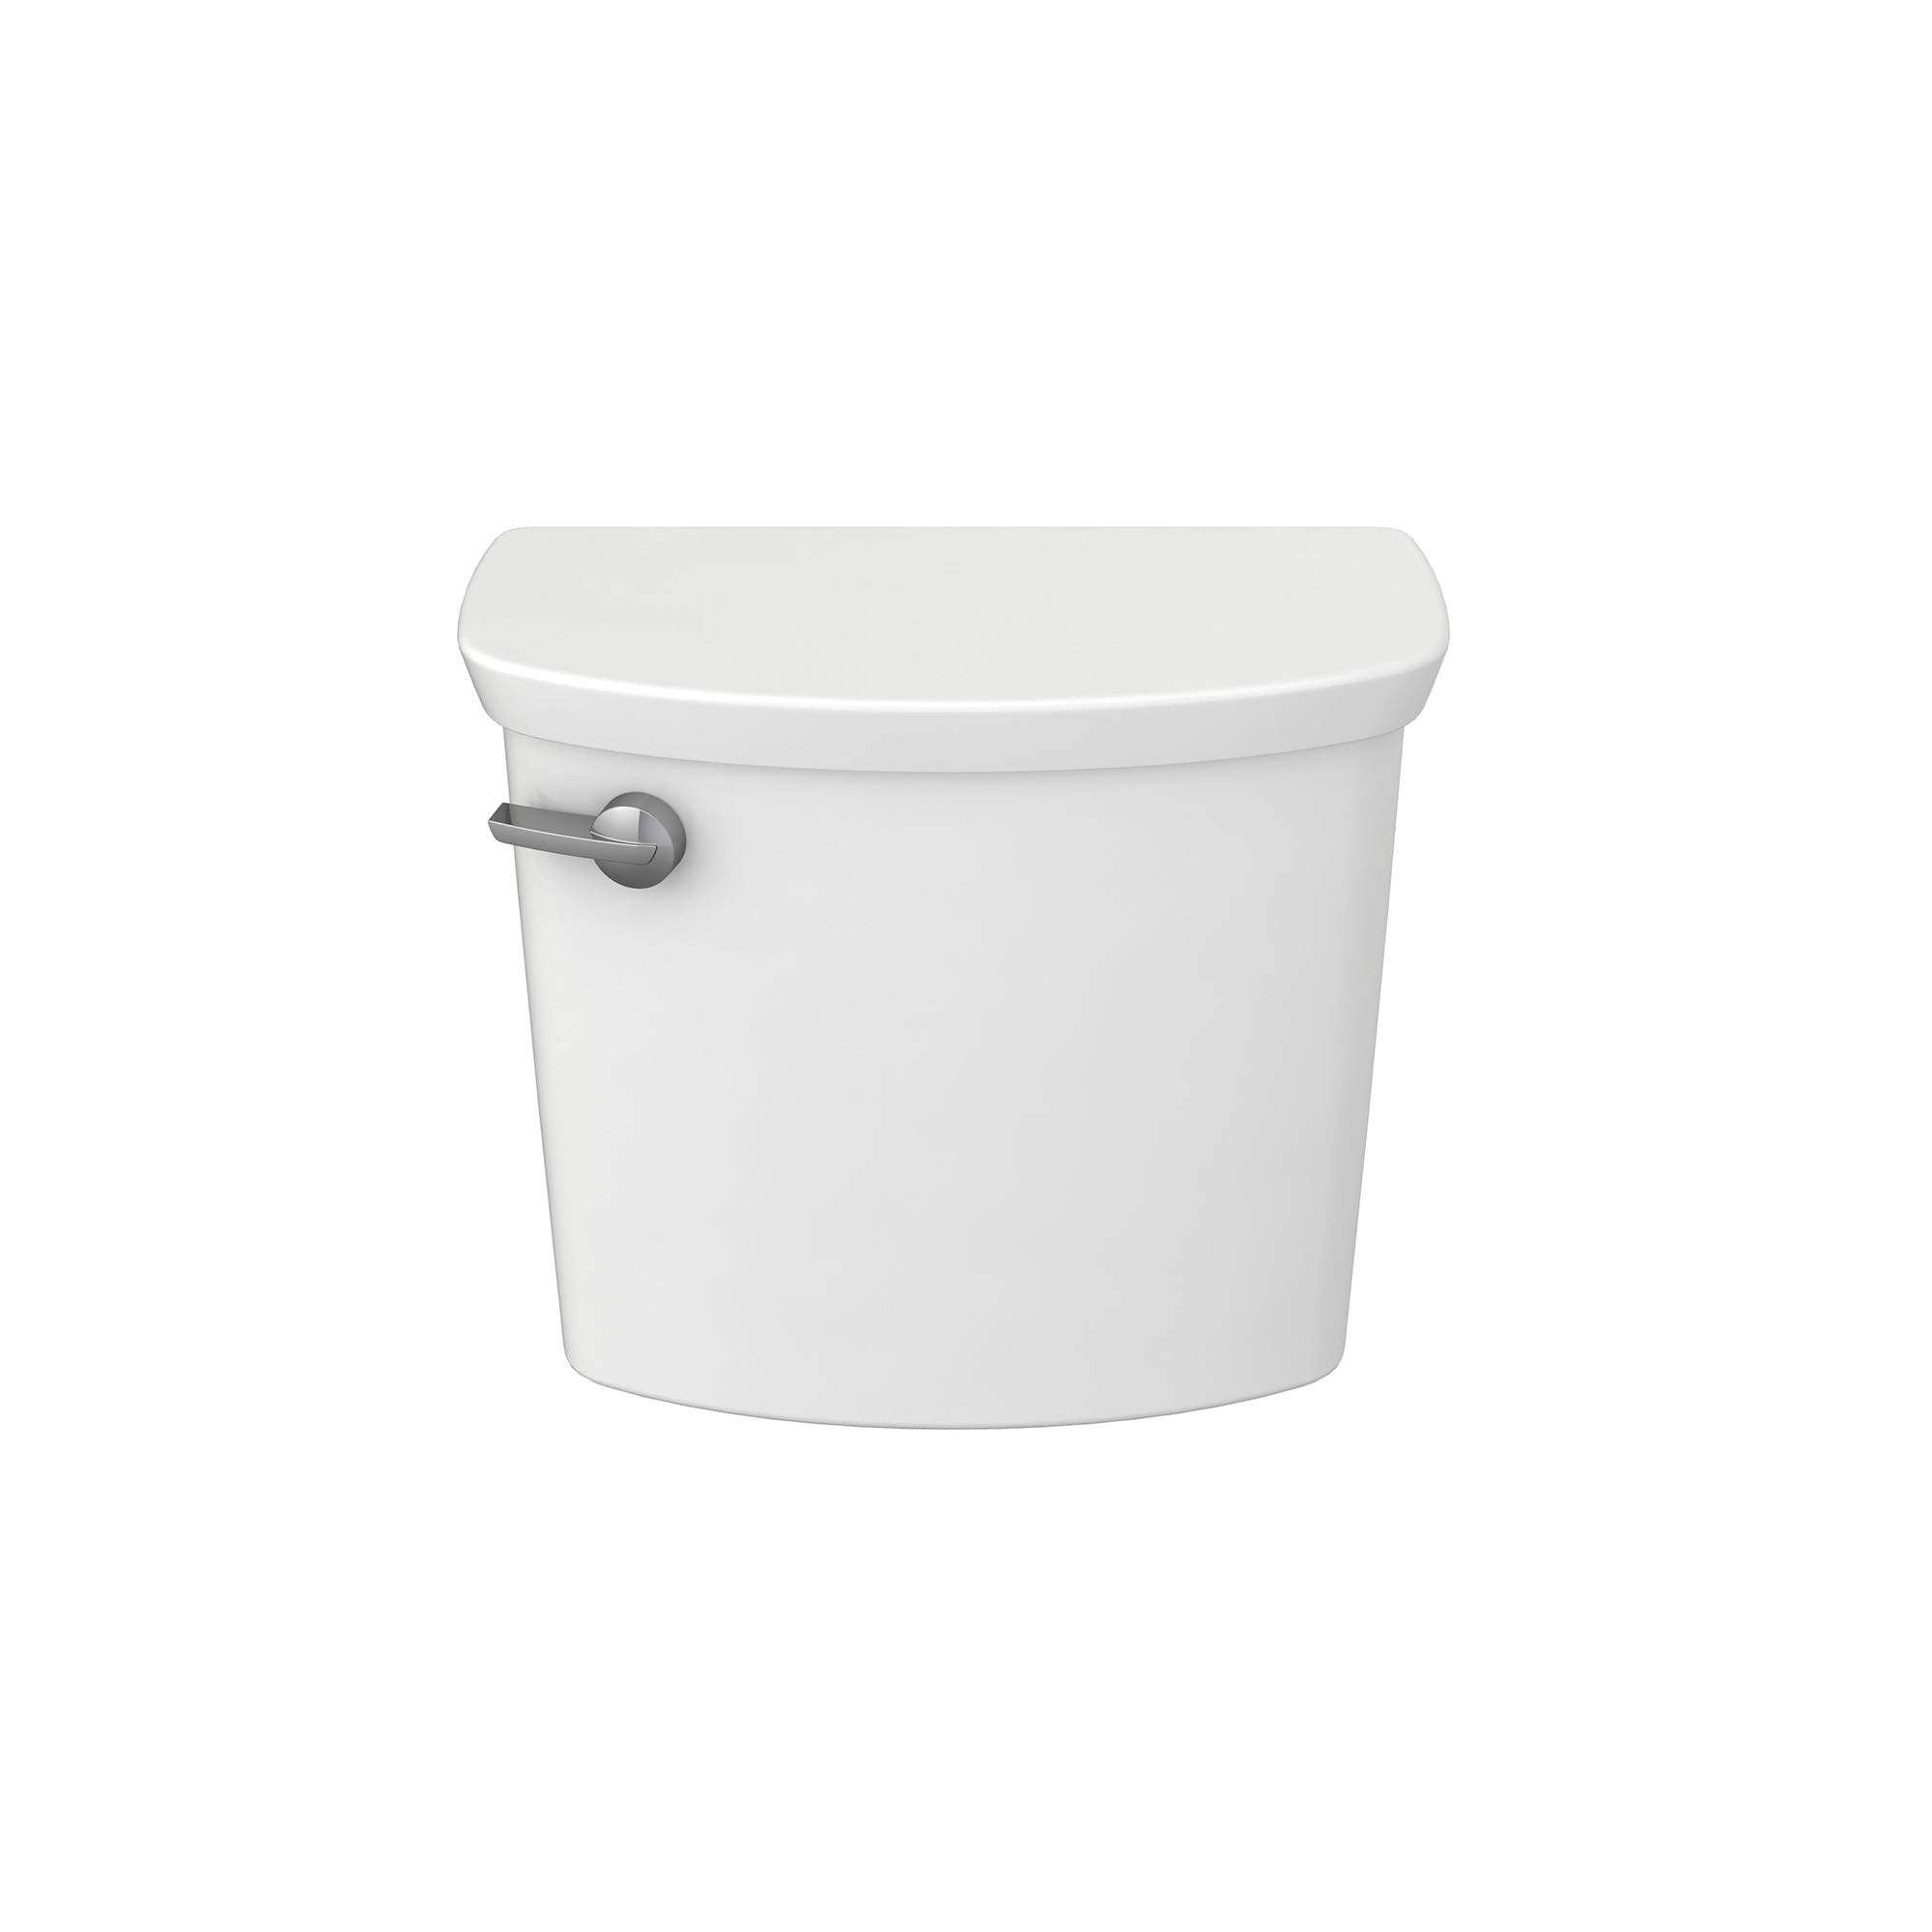 American Standard 4385A107.020 Glenwall VorMax Toilet Tank with Left-Hand Trip Lever White